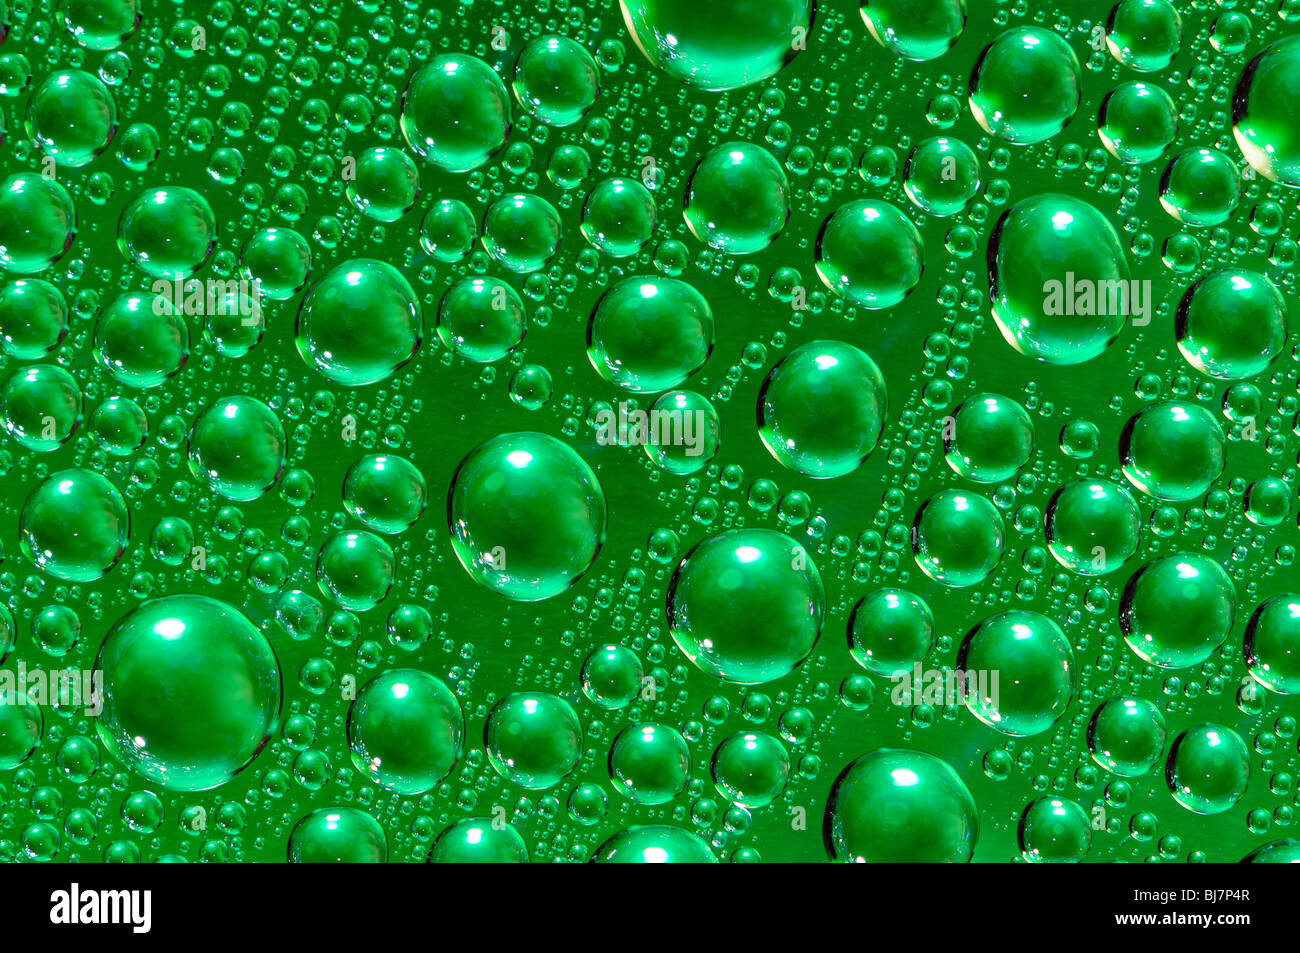 abstract background of water drops on glass - Stock Image